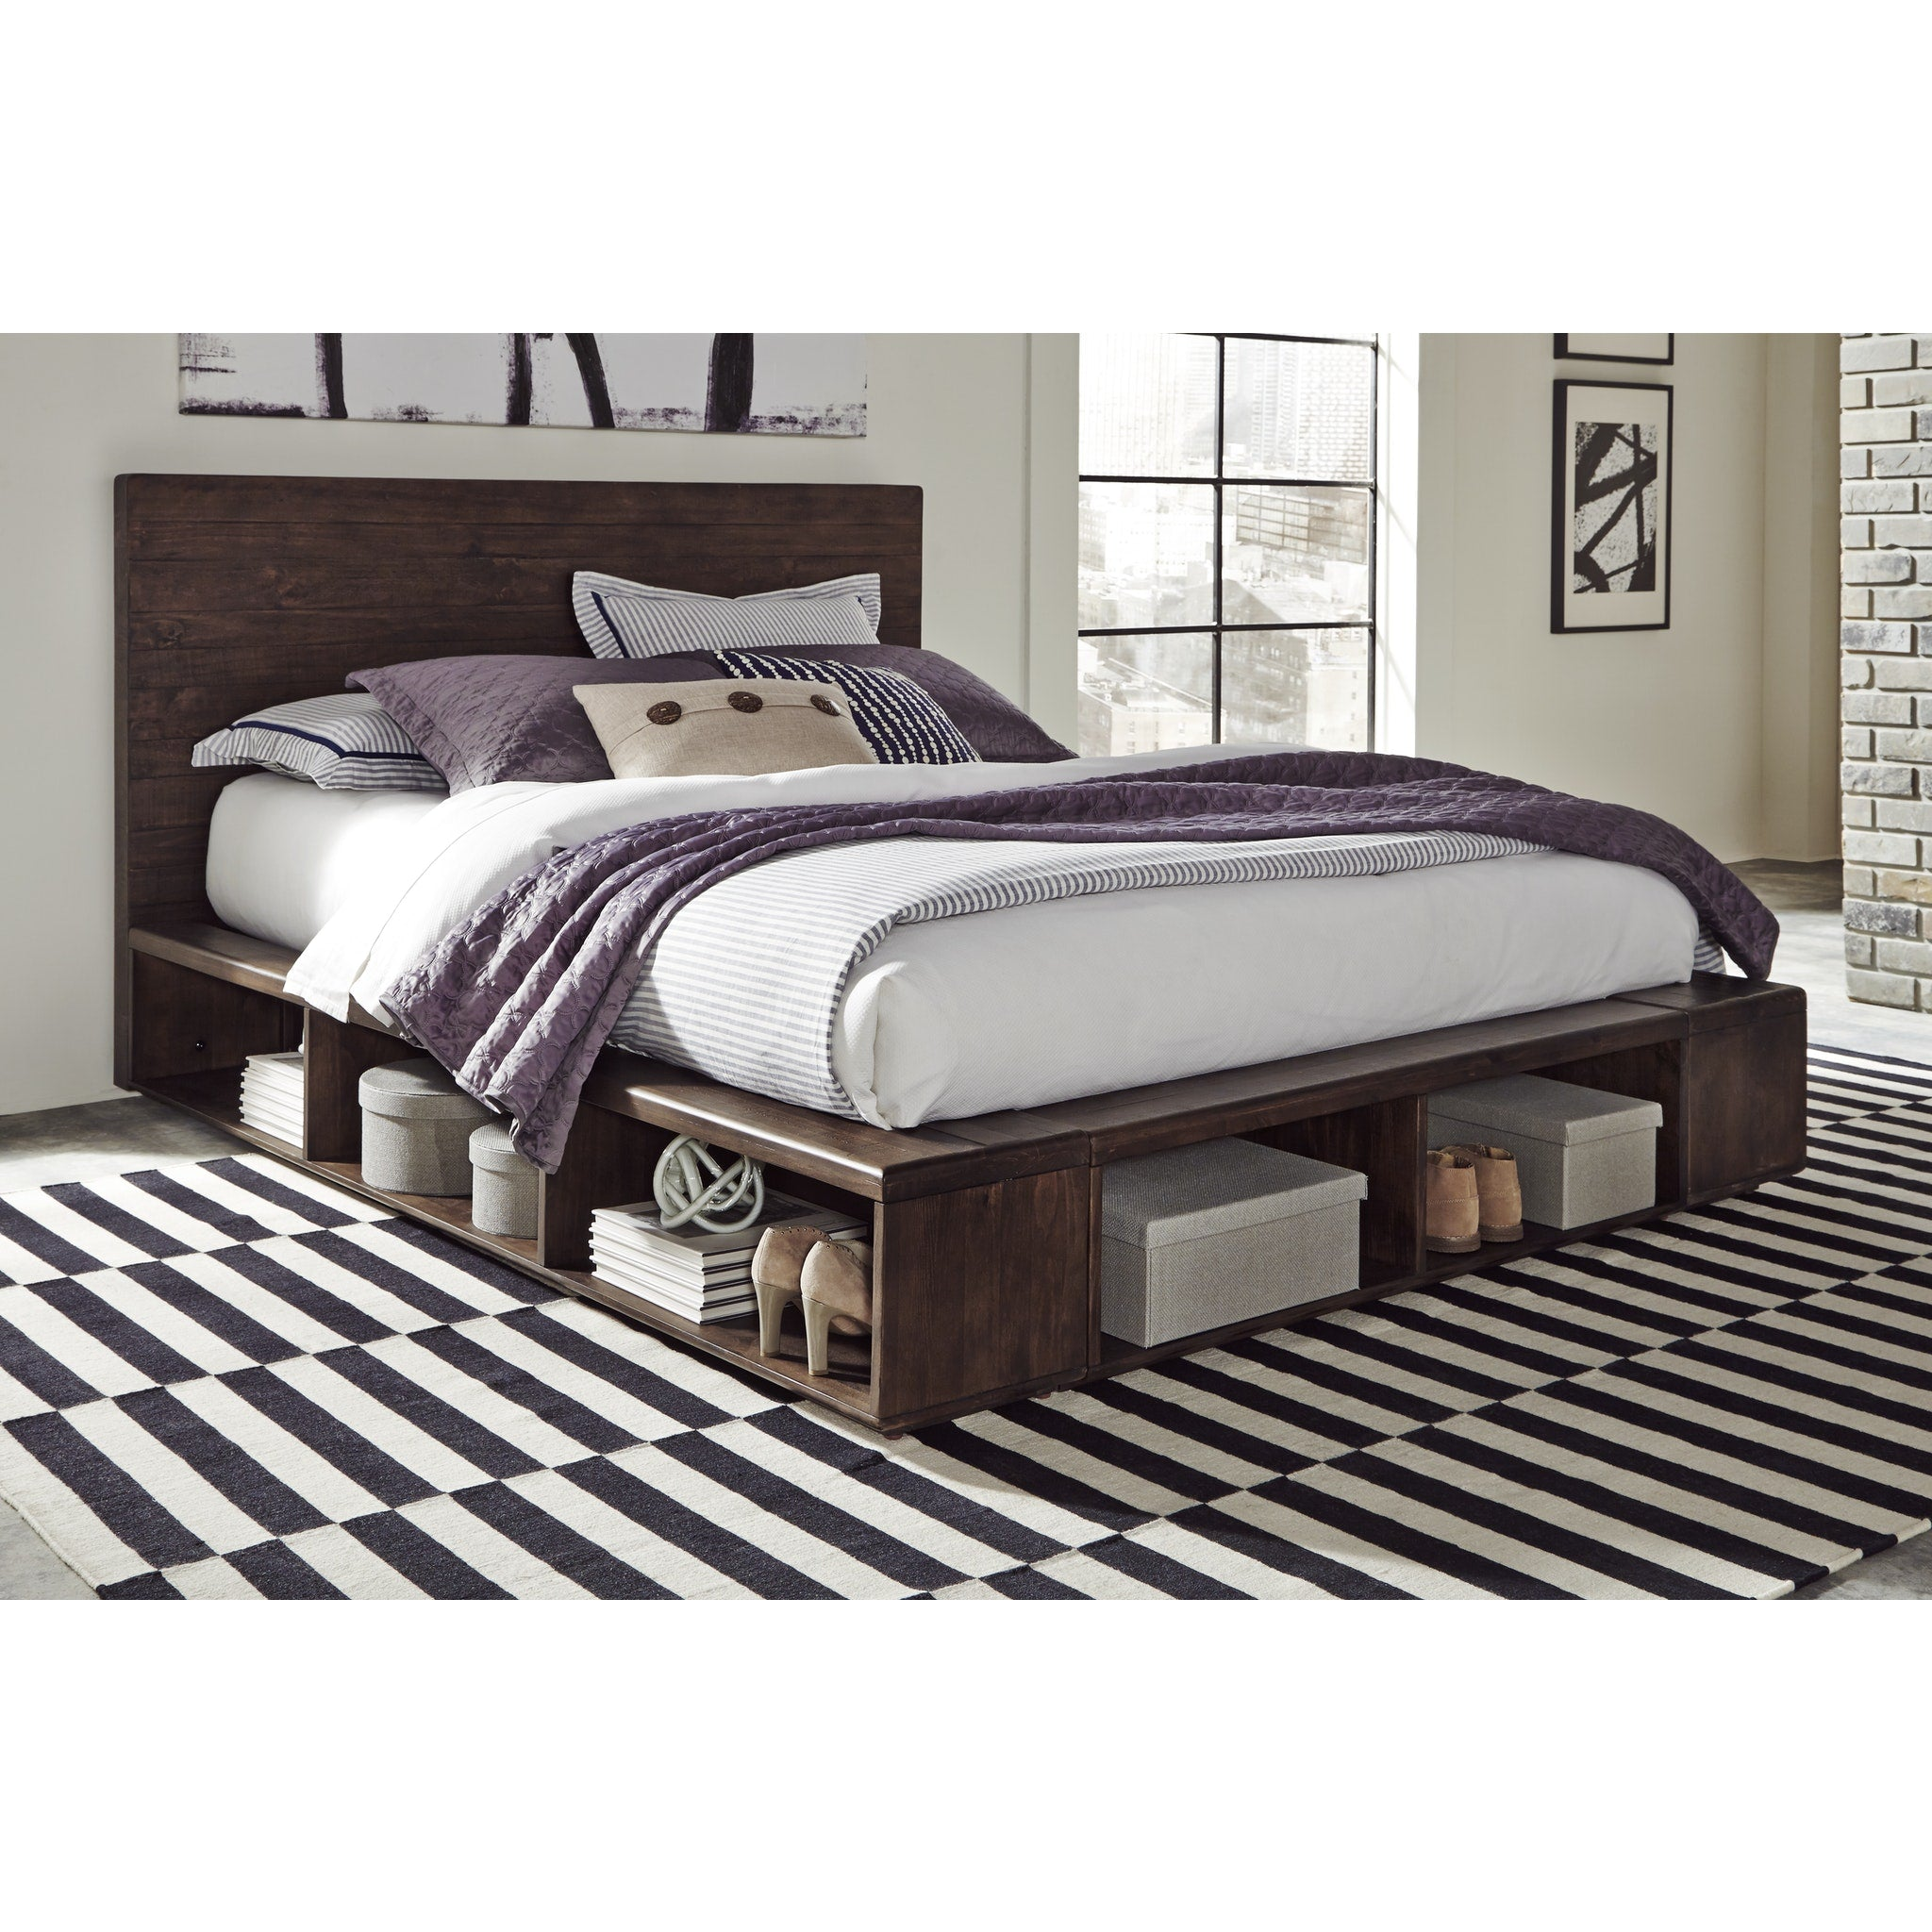 McKinney King-size Solid Wood Low Platform Storage Bed in Espresso Pine